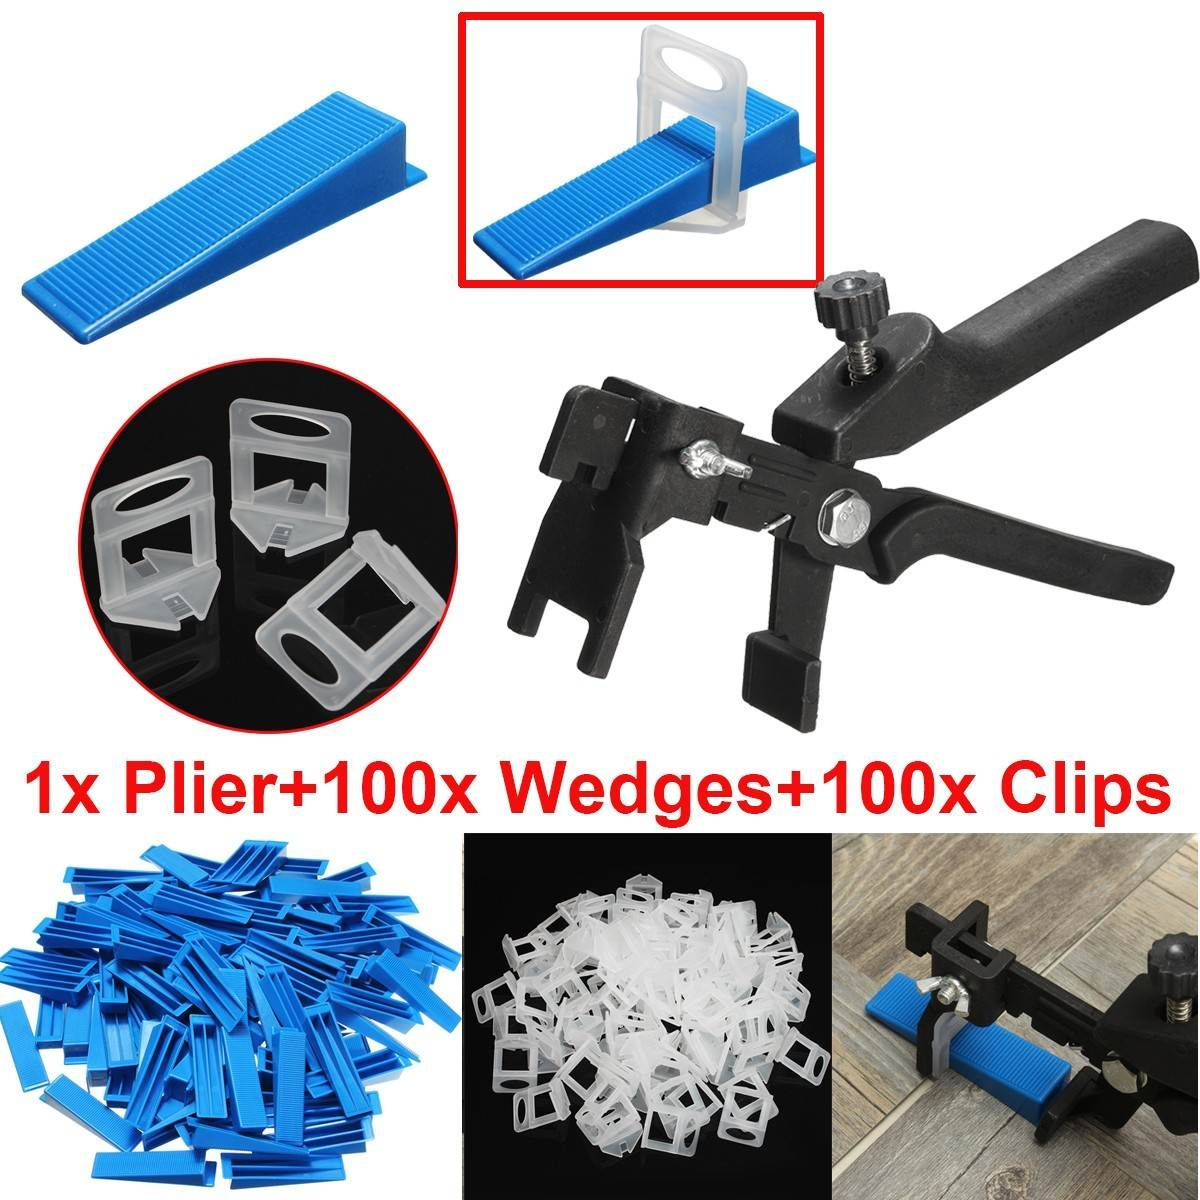 201 fliesen Nivellierung System 100 Keile + 100 Clips + Zange Boden Wand Spacer Kit 3mm